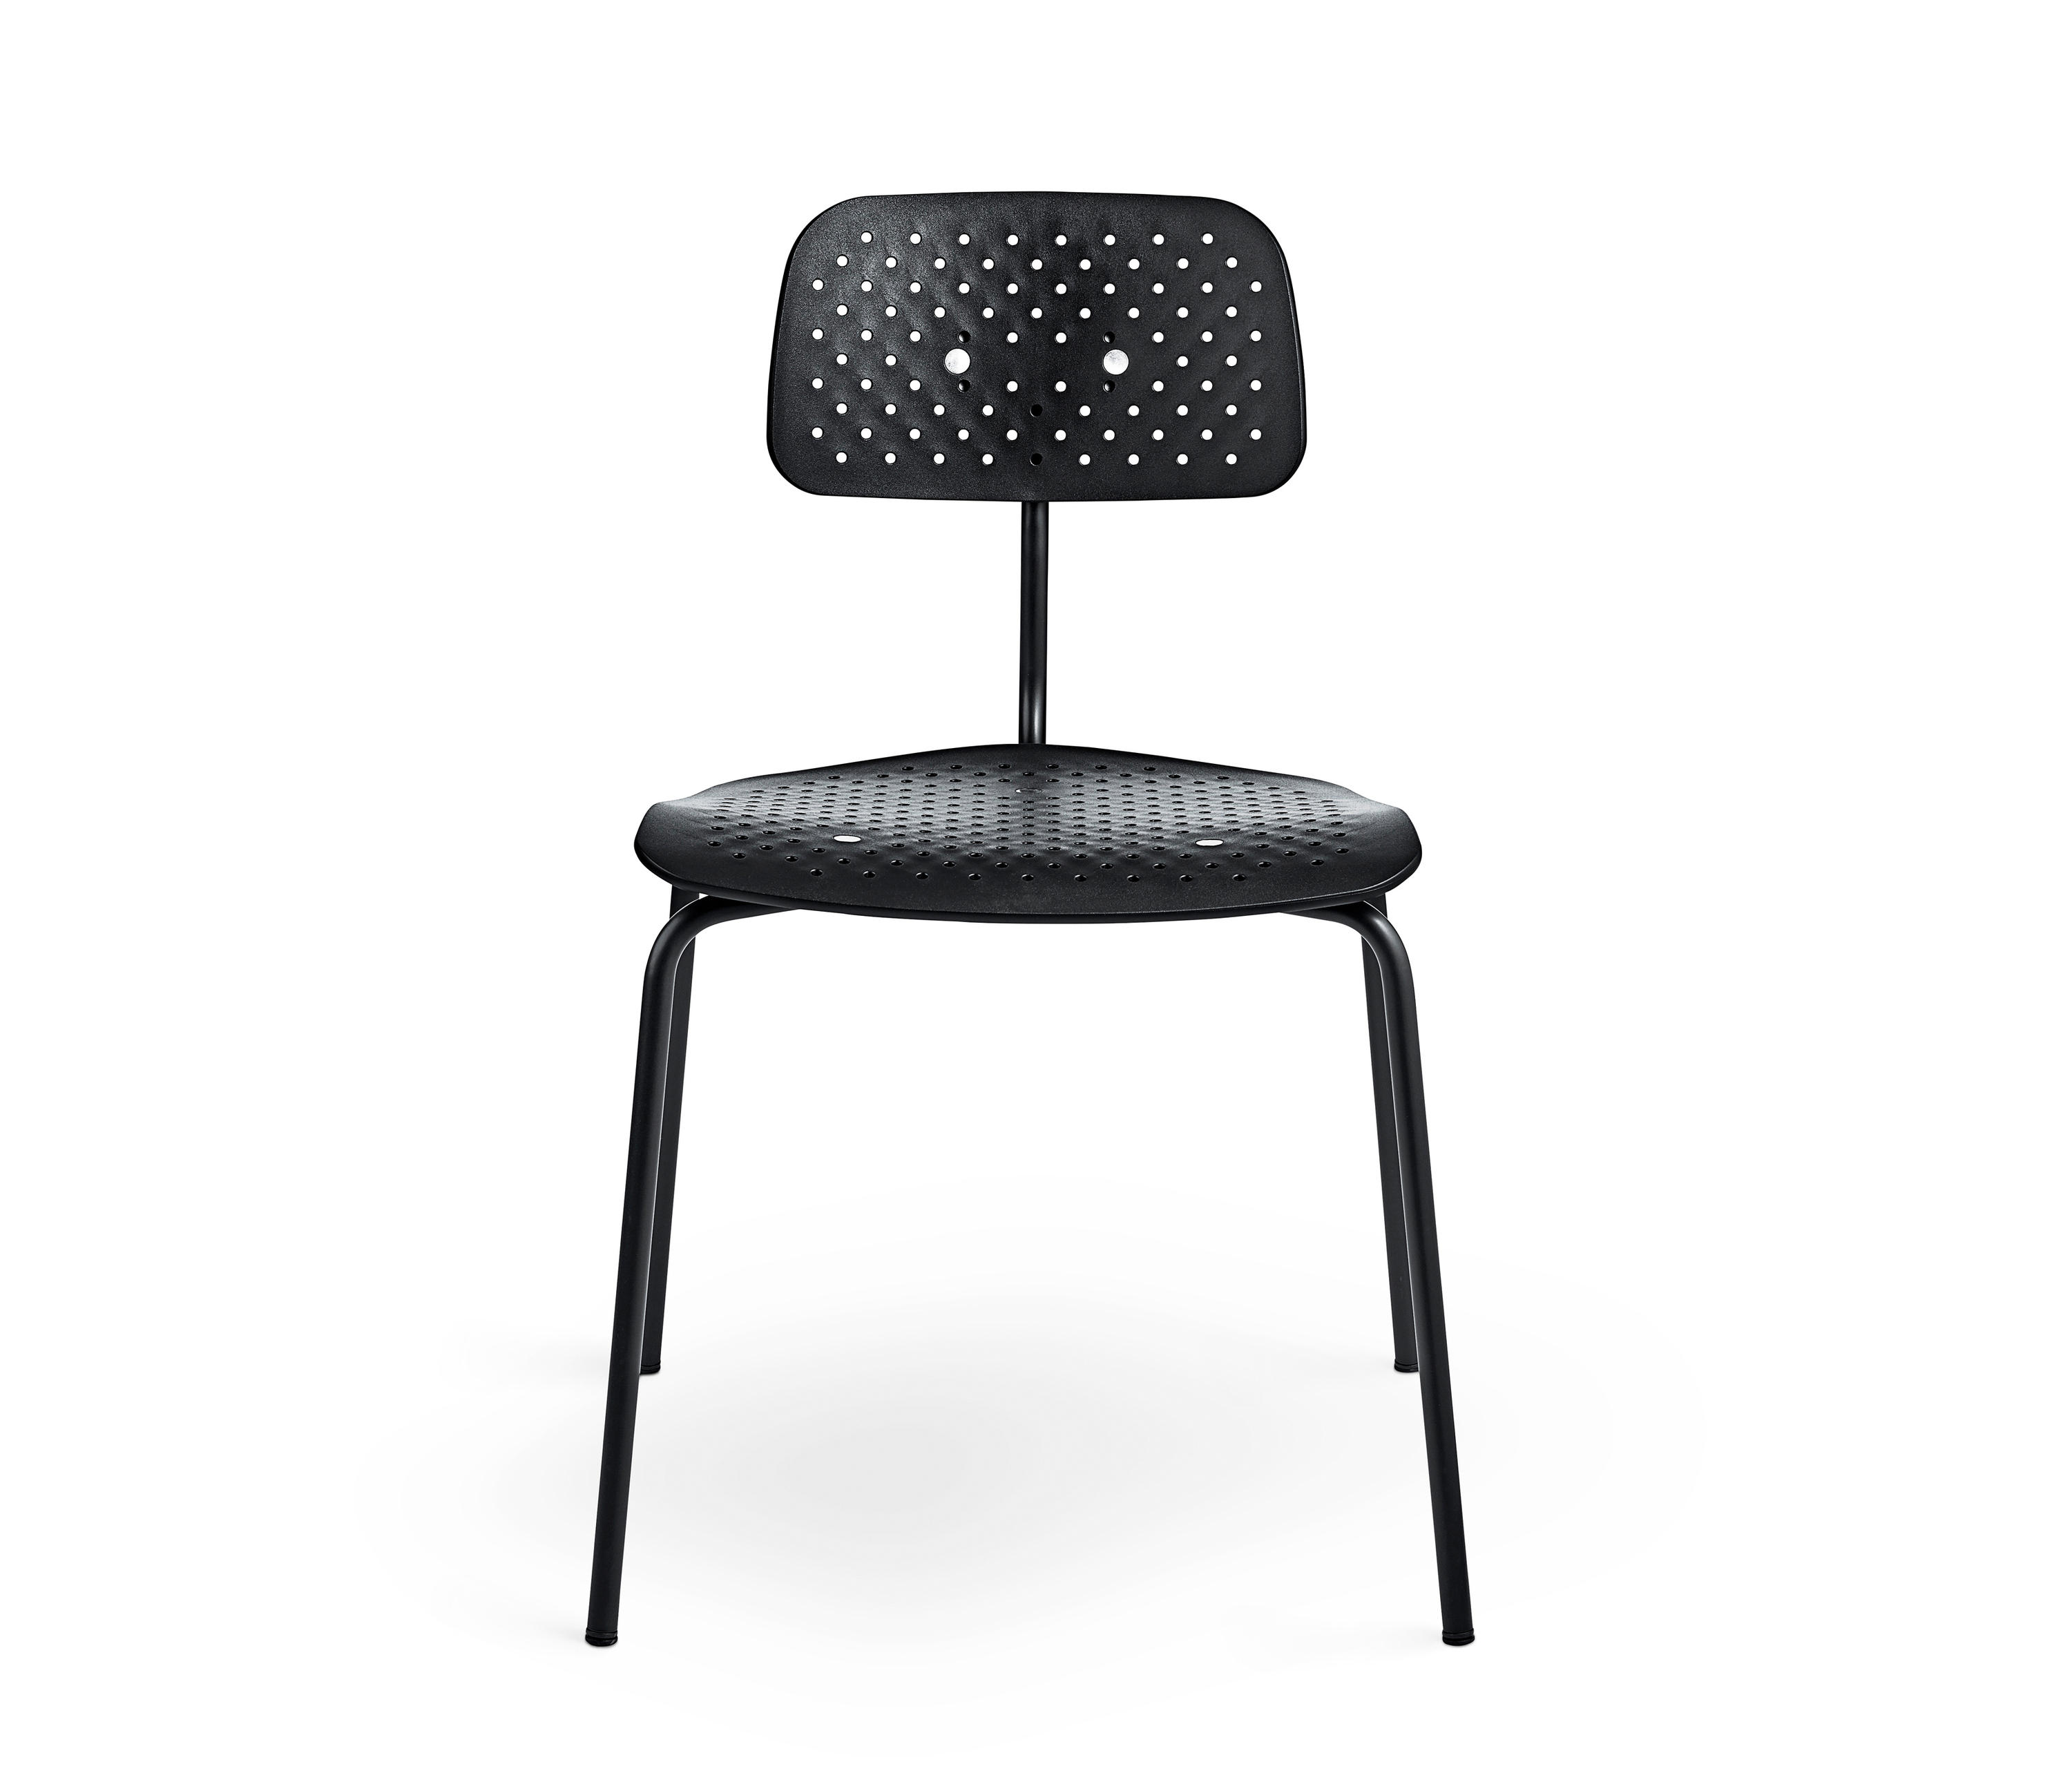 Kevi Chair Kevi 2060 Air Chairs From Engelbrechts Architonic